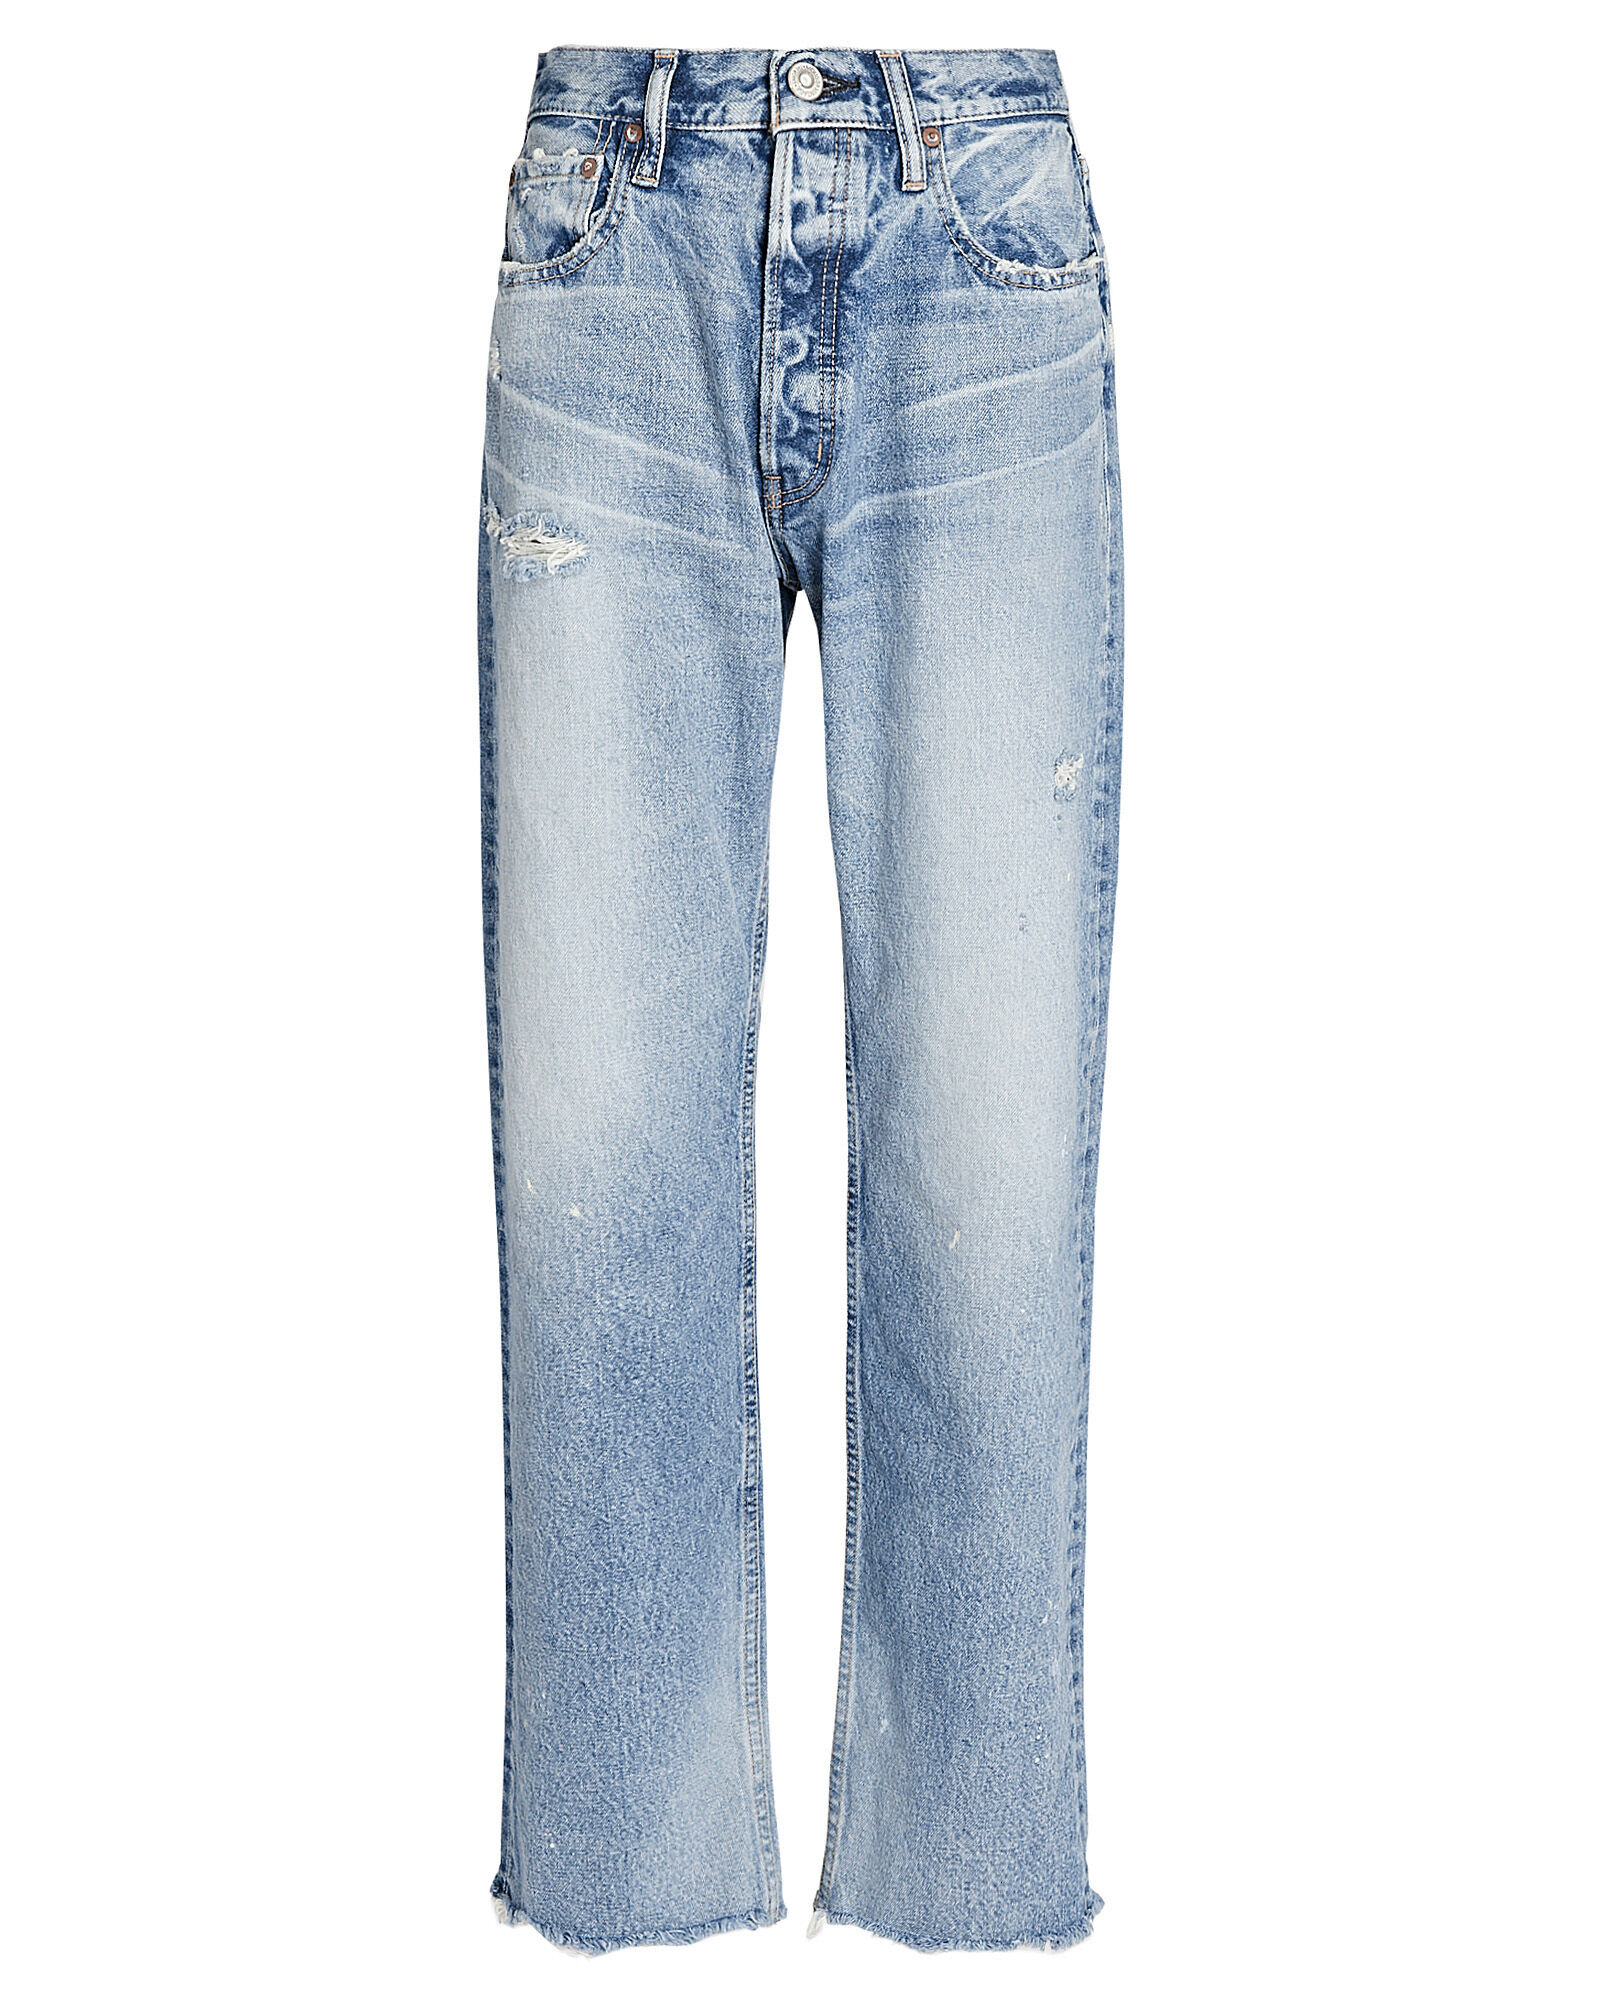 Lomita Wide Straight-Leg Jeans, MEDIUM WASH DENIM, hi-res